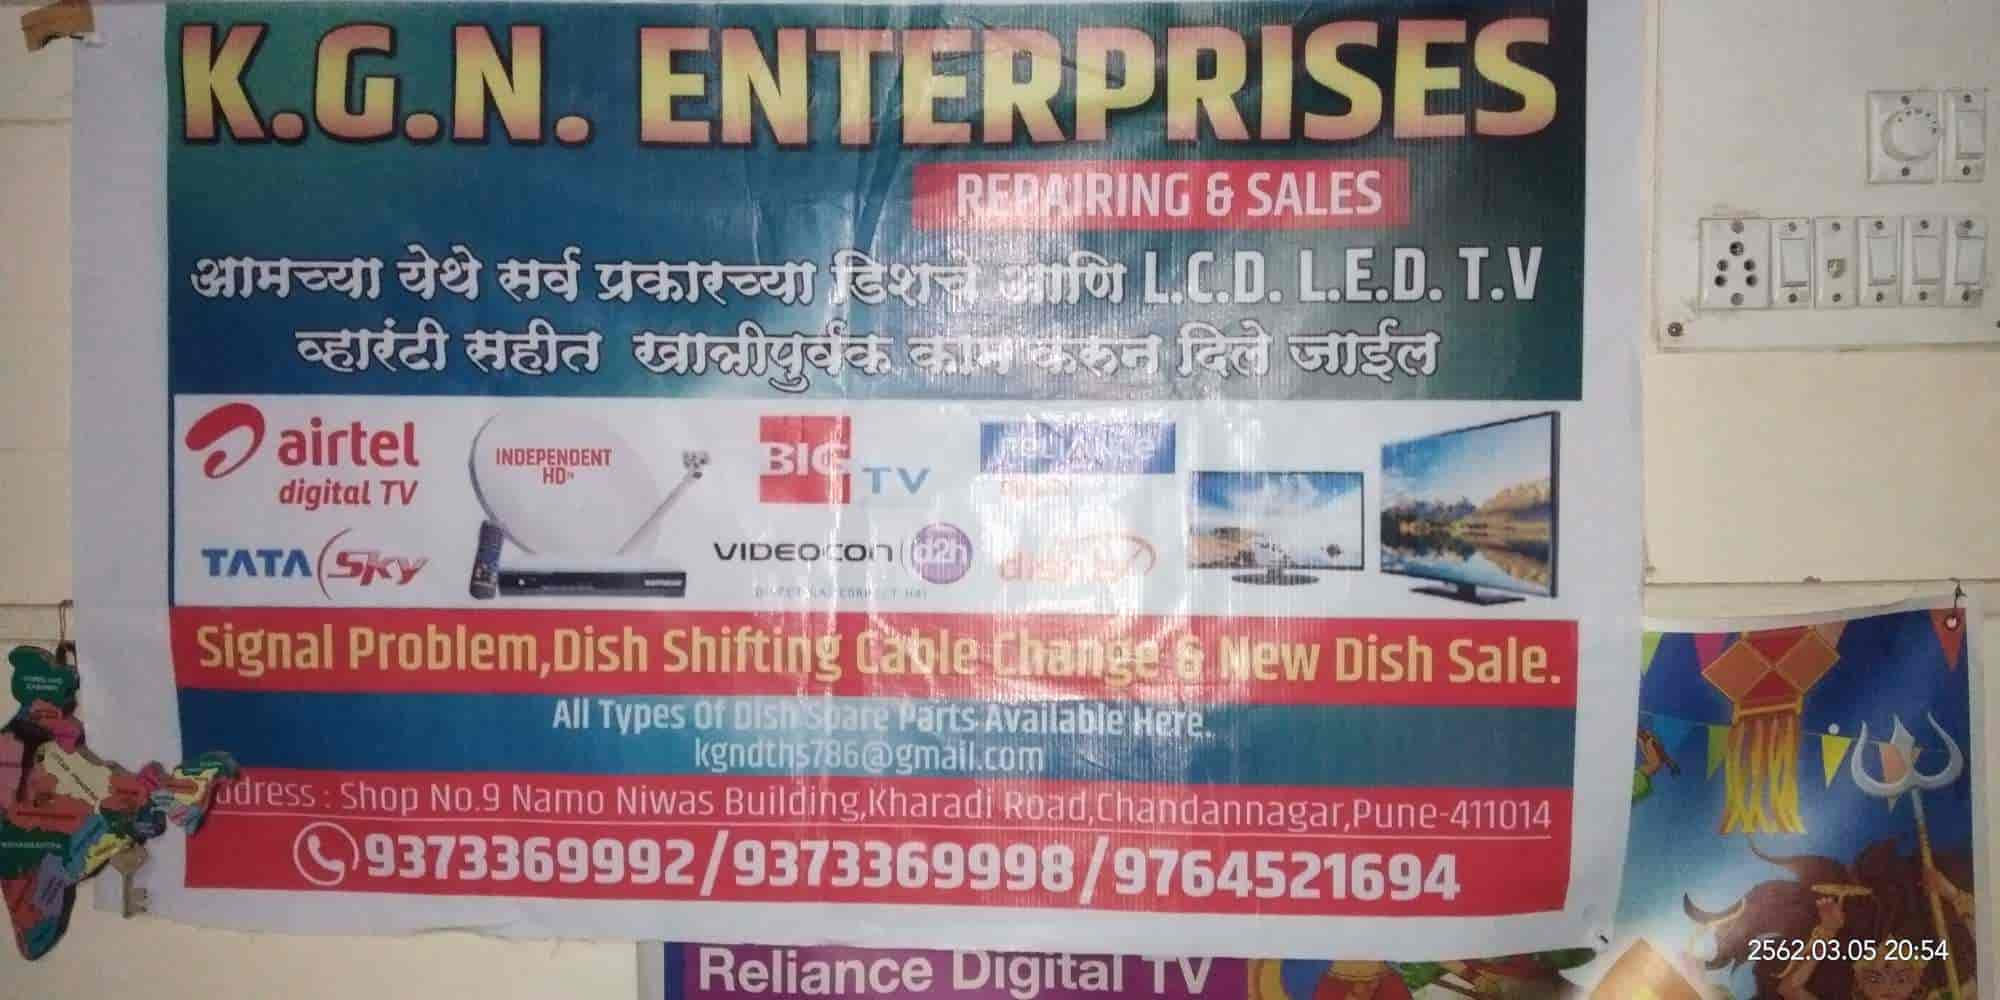 K G N DTH Sales And Service, Kharadi - DTH TV Broadcast